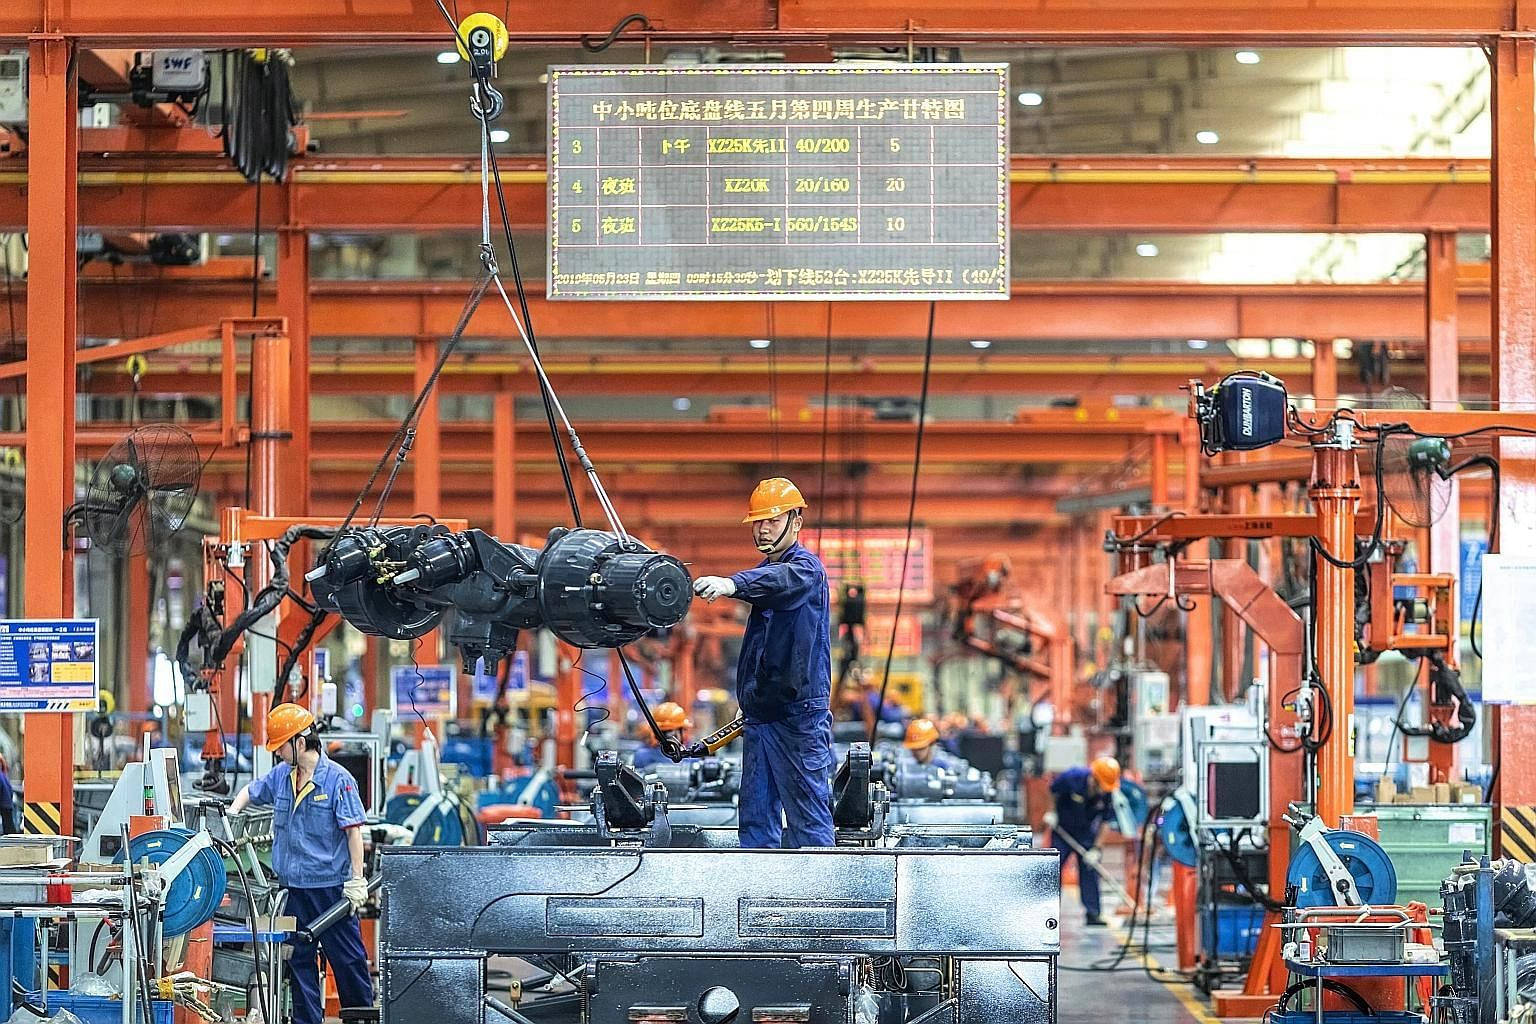 A factory in China's Jiangsu province. US President Donald Trump and Chinese President Xi Jinping agreed on the sidelines of the G-20 summit in Osaka to stand down from the escalation of the trade war. When trade talks resume, the two countries may r